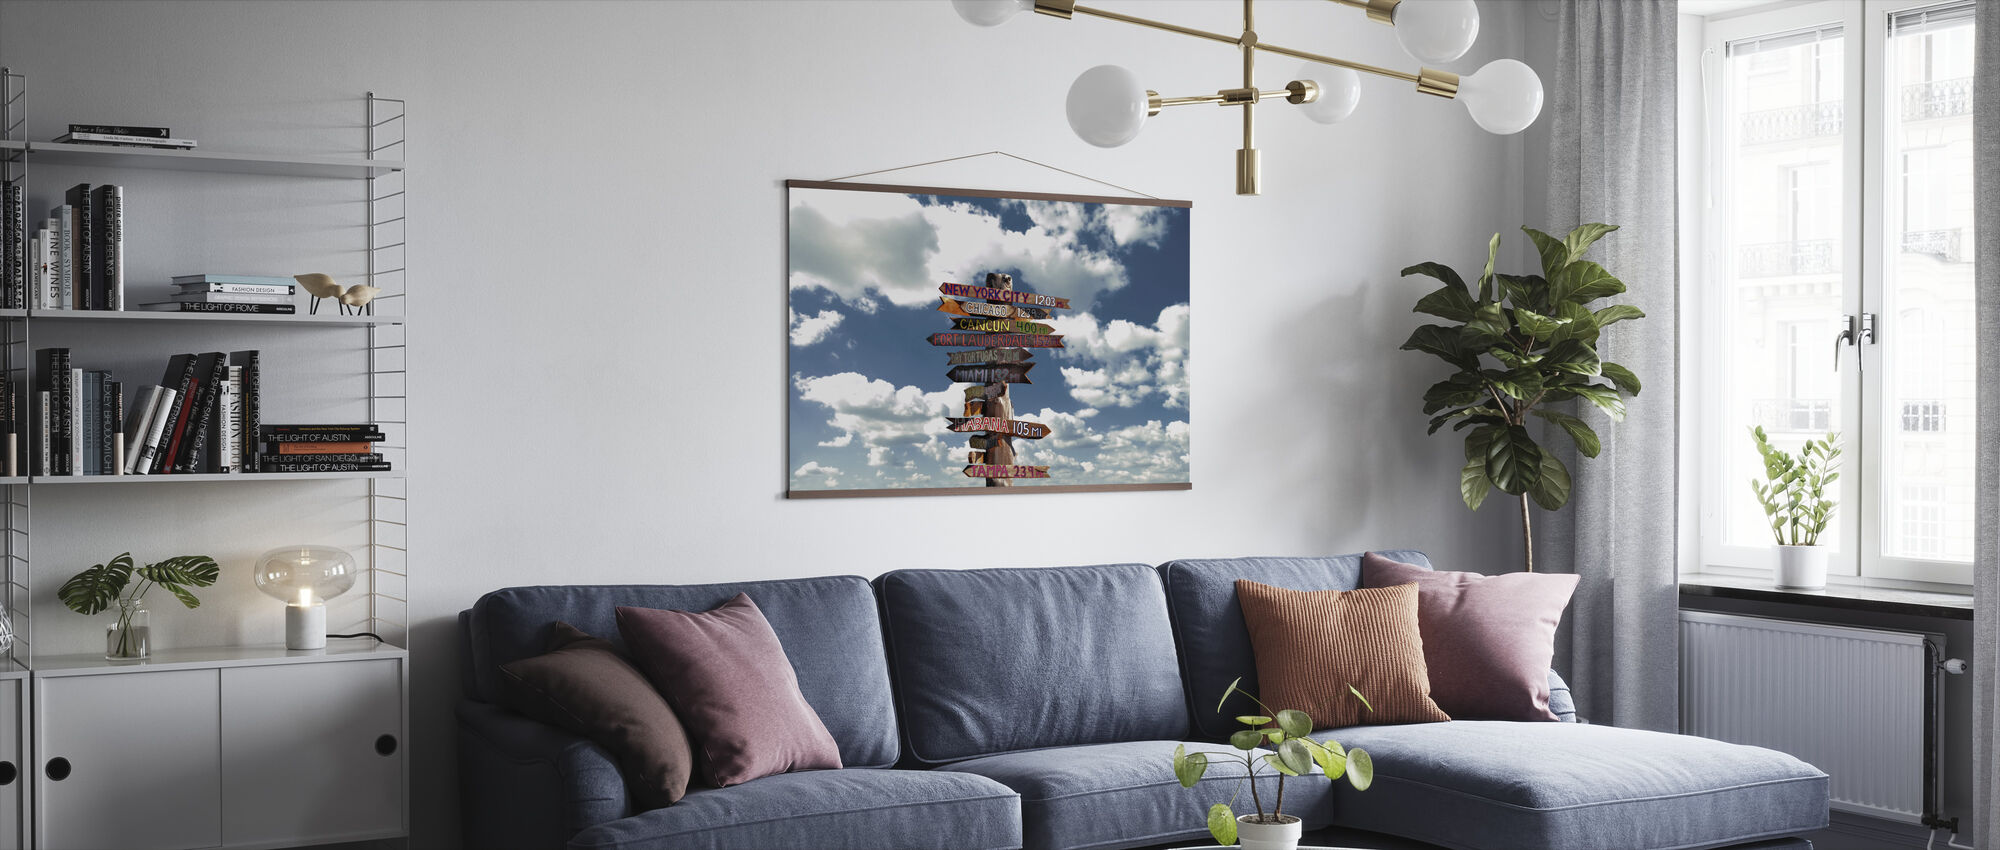 Key West Florida - Sky with Wooden Sign - Poster - Living Room